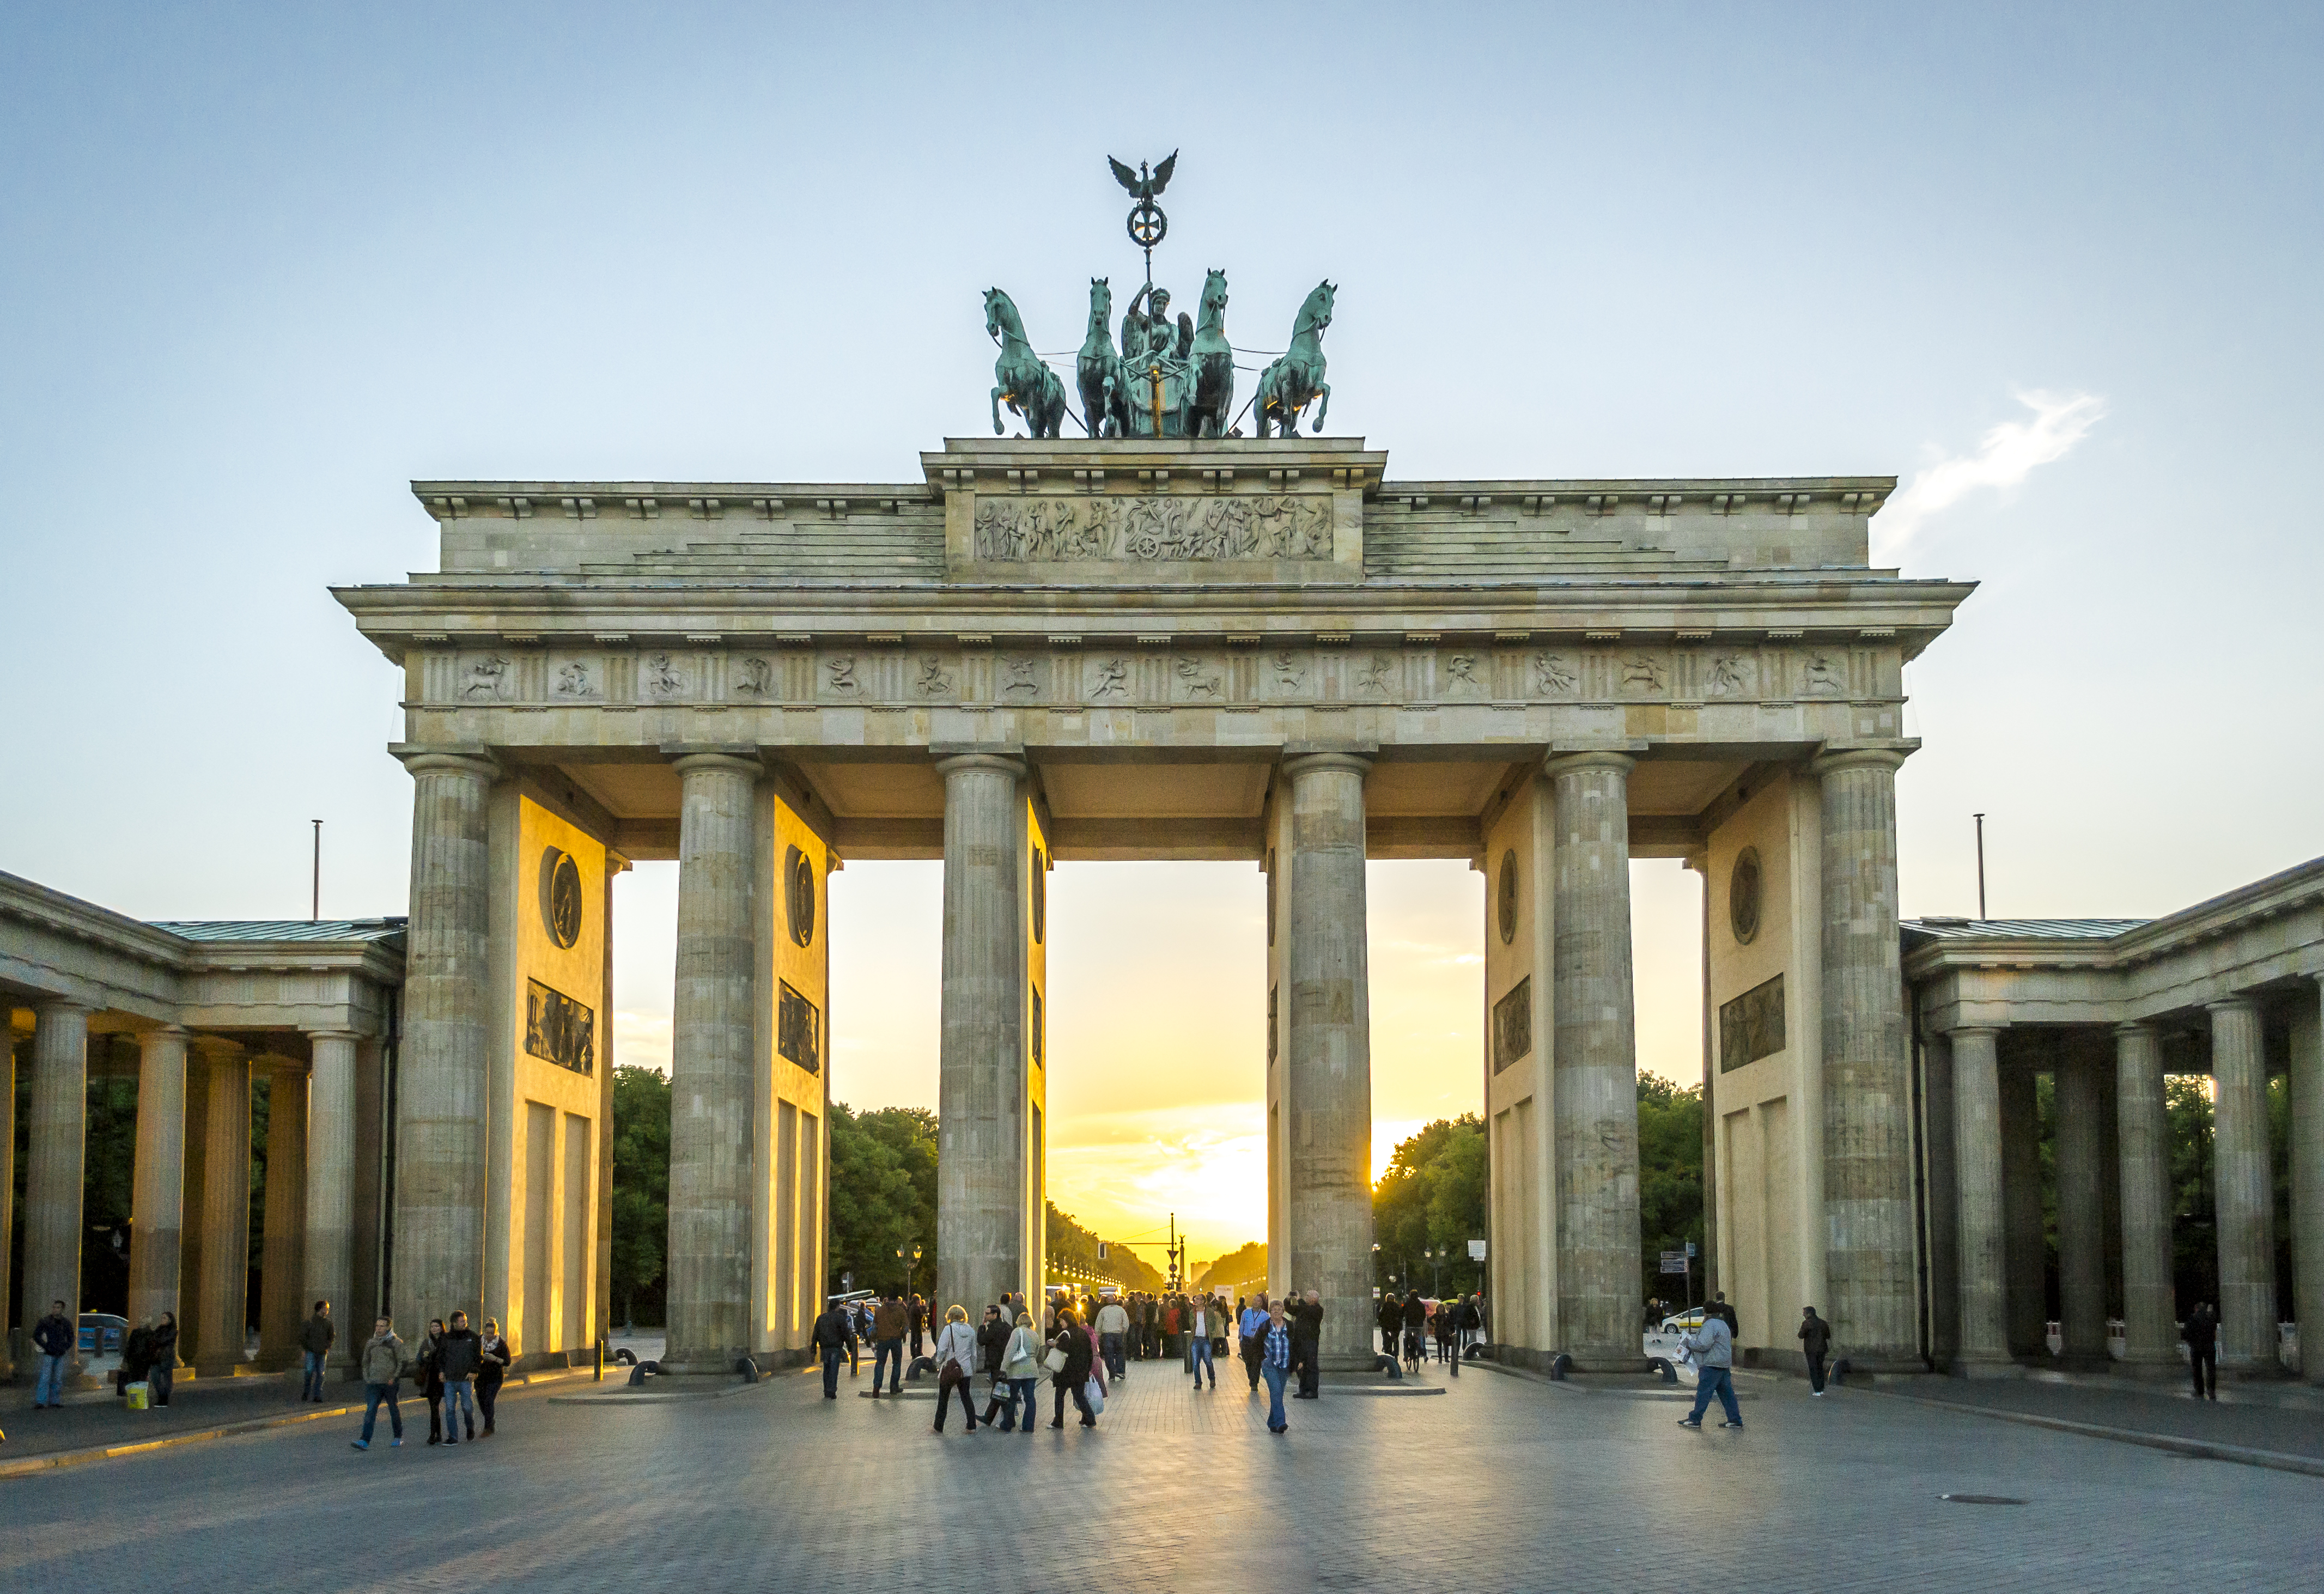 The exterior of the Brandenburg Gate in Berlin, Germany, at sunset. The gate has columns. There are statues on top of the gate.